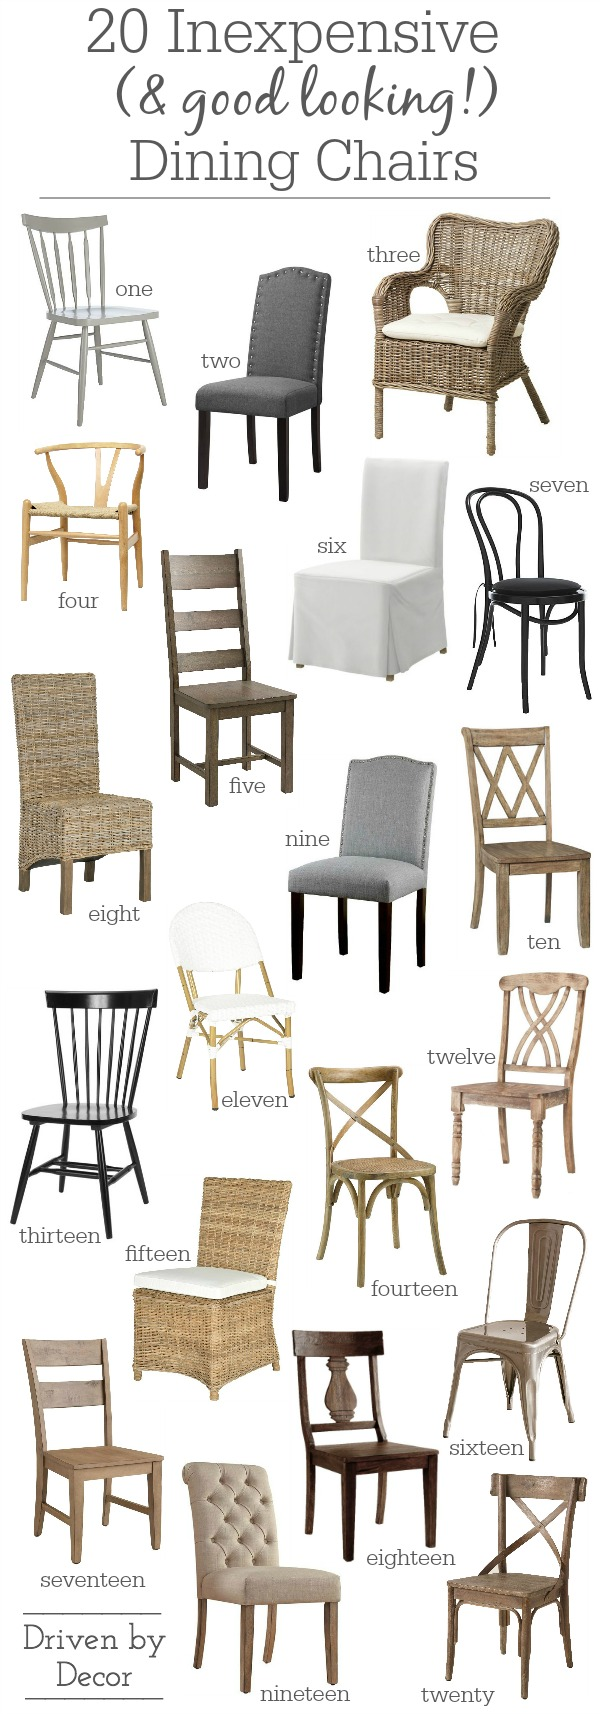 inexpensive upholstered dining chairs chair back covers classroom 20 (that don't look cheap!) | driven by decor